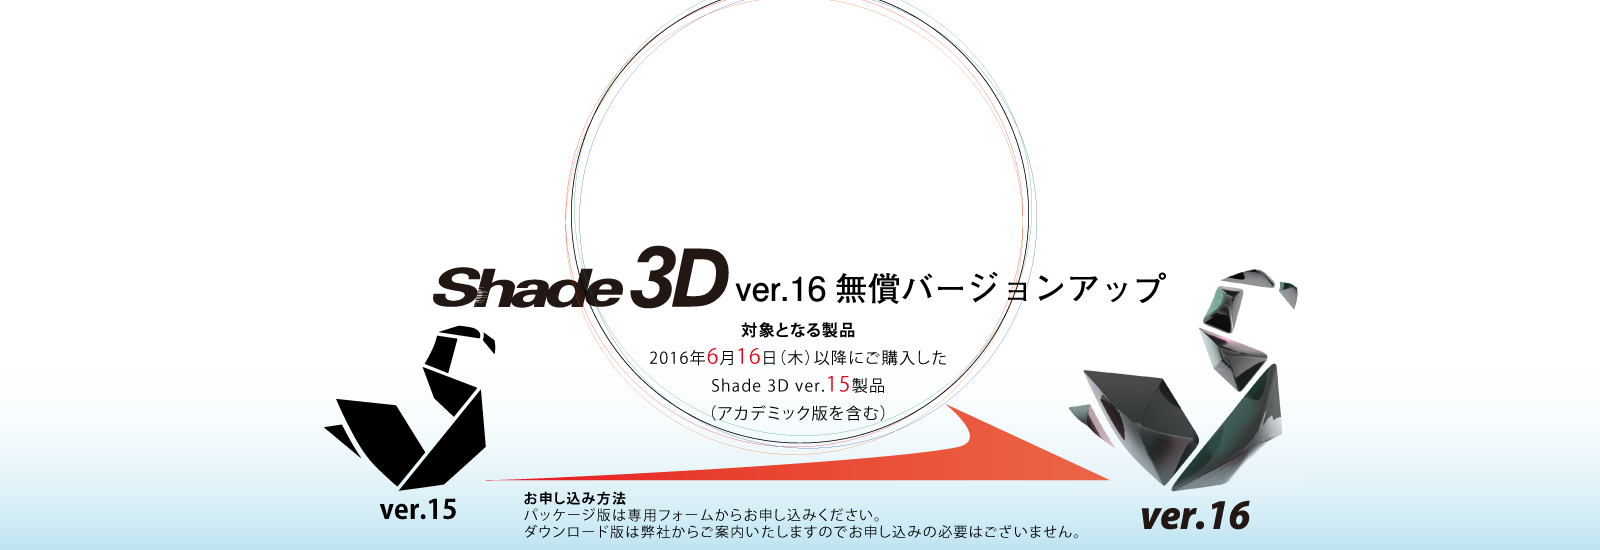 Shade3D ver.16 free update